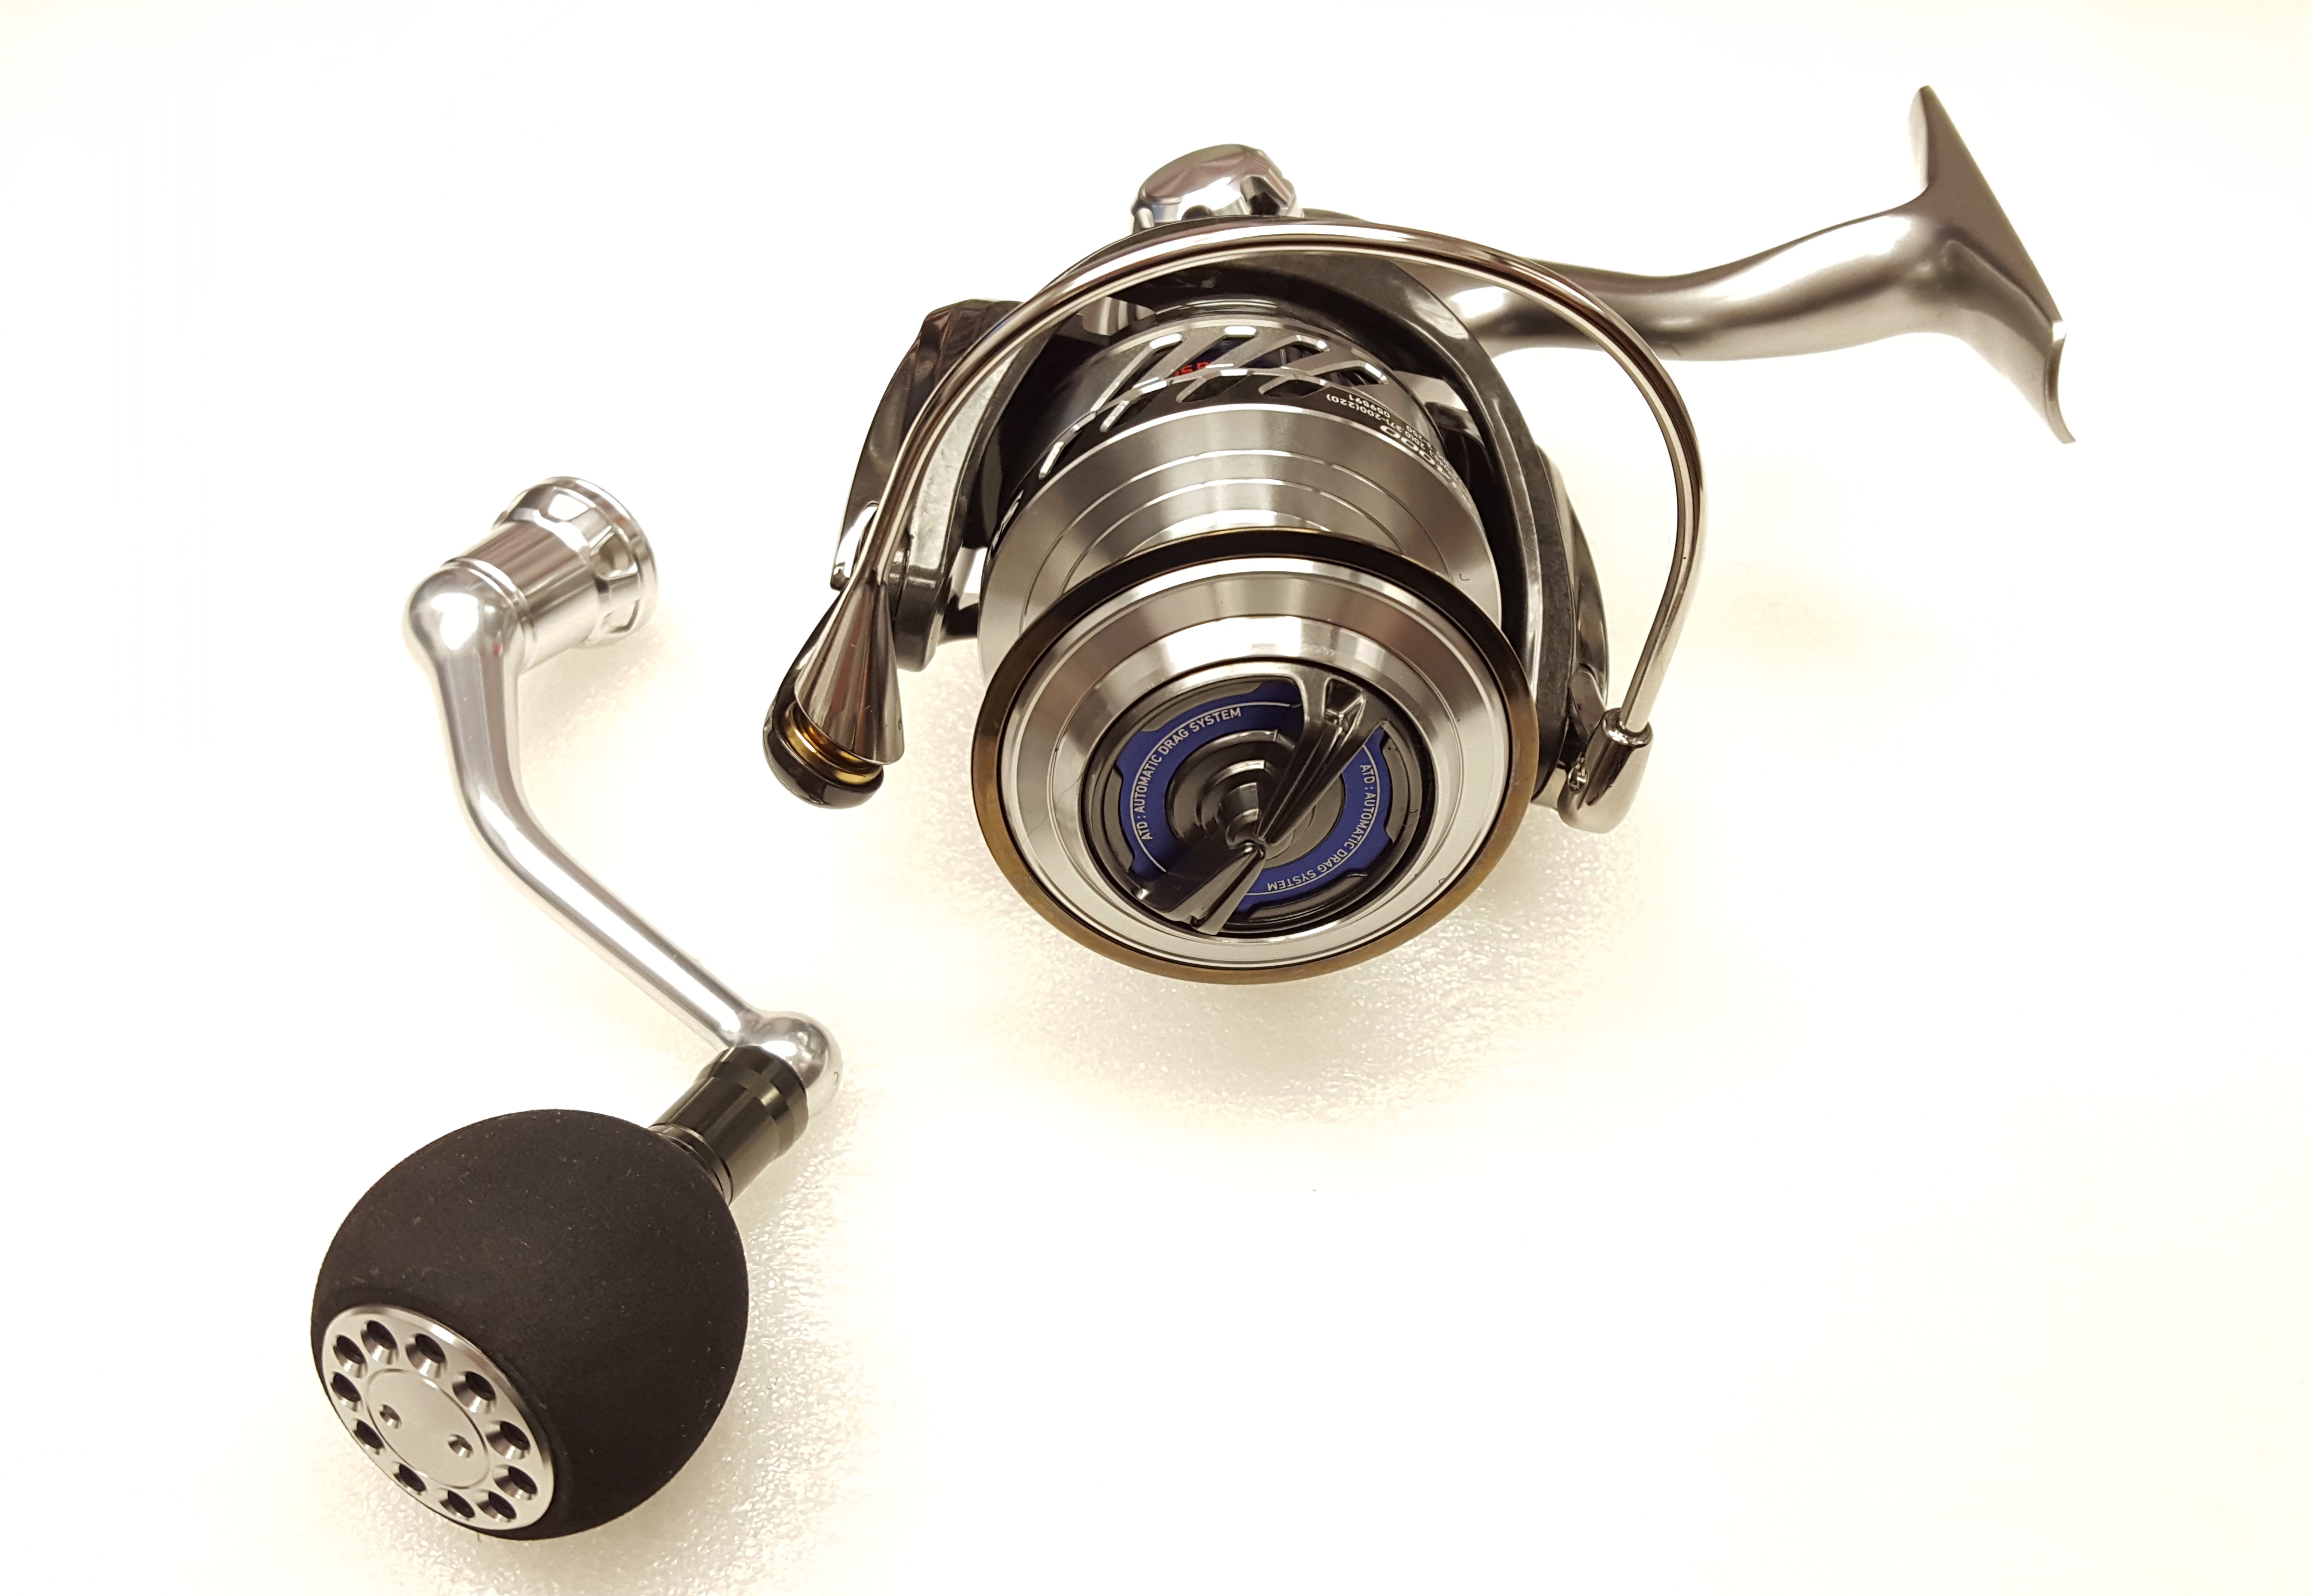 Daiwa Saltiga Bay Jigging 4.9:1 Saltwater Spinning Fishing Reel